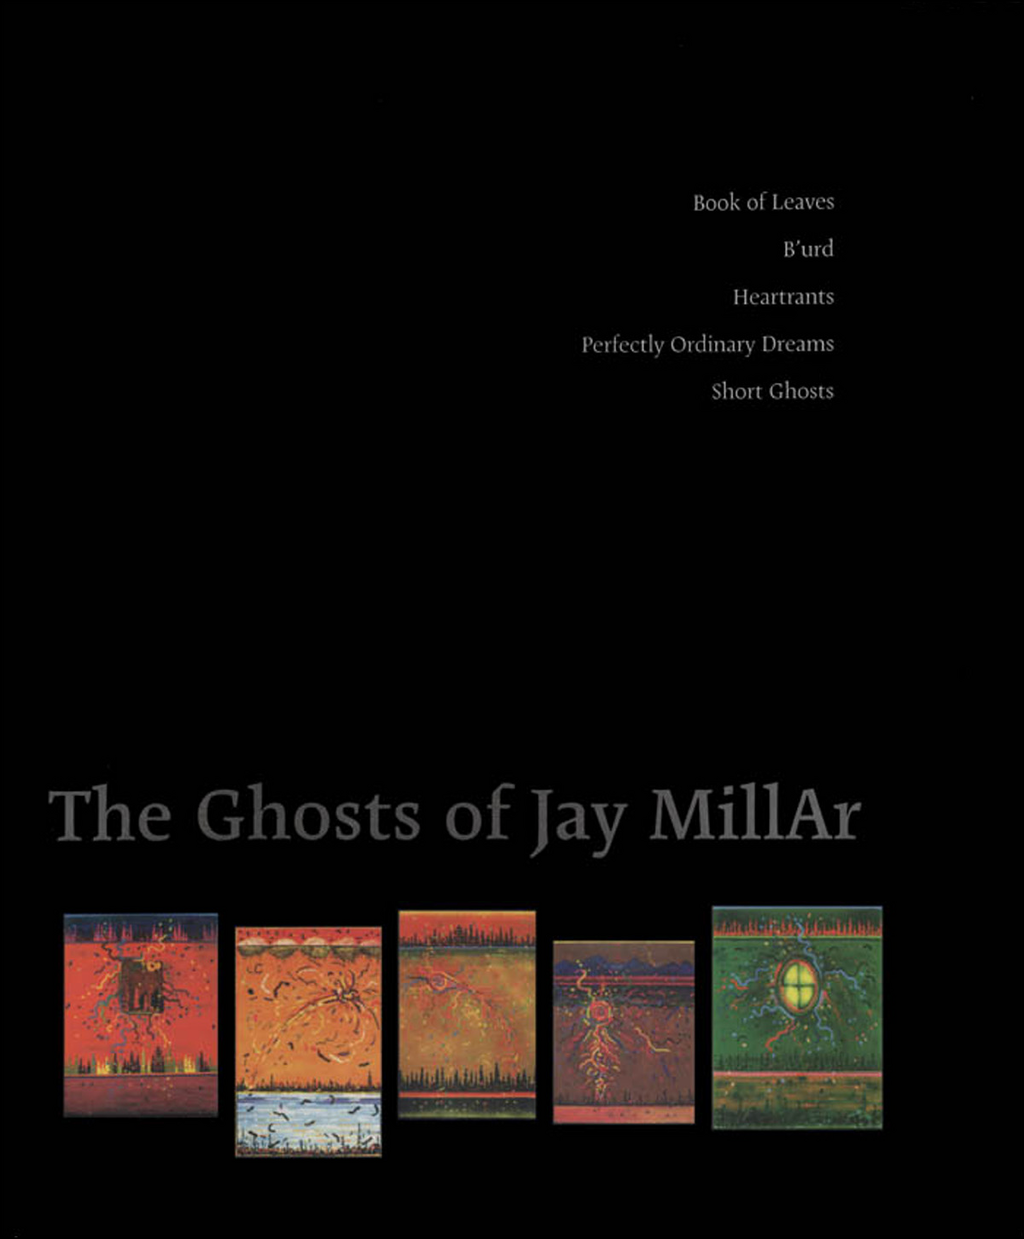 The Ghosts of Jay Millar